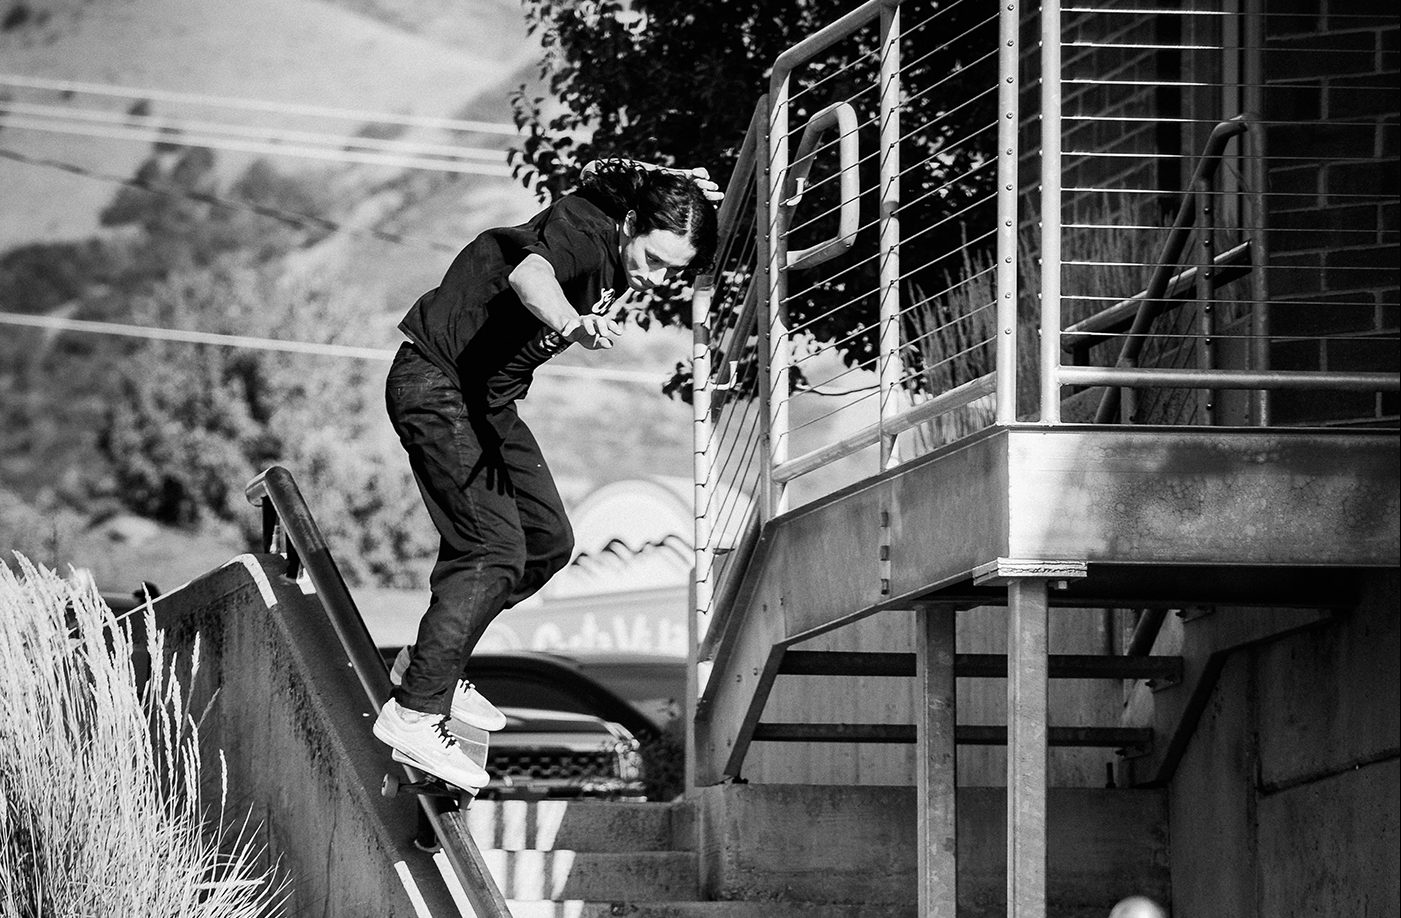 Mikey Martinez – Backside 50-50 – SLC, Utah